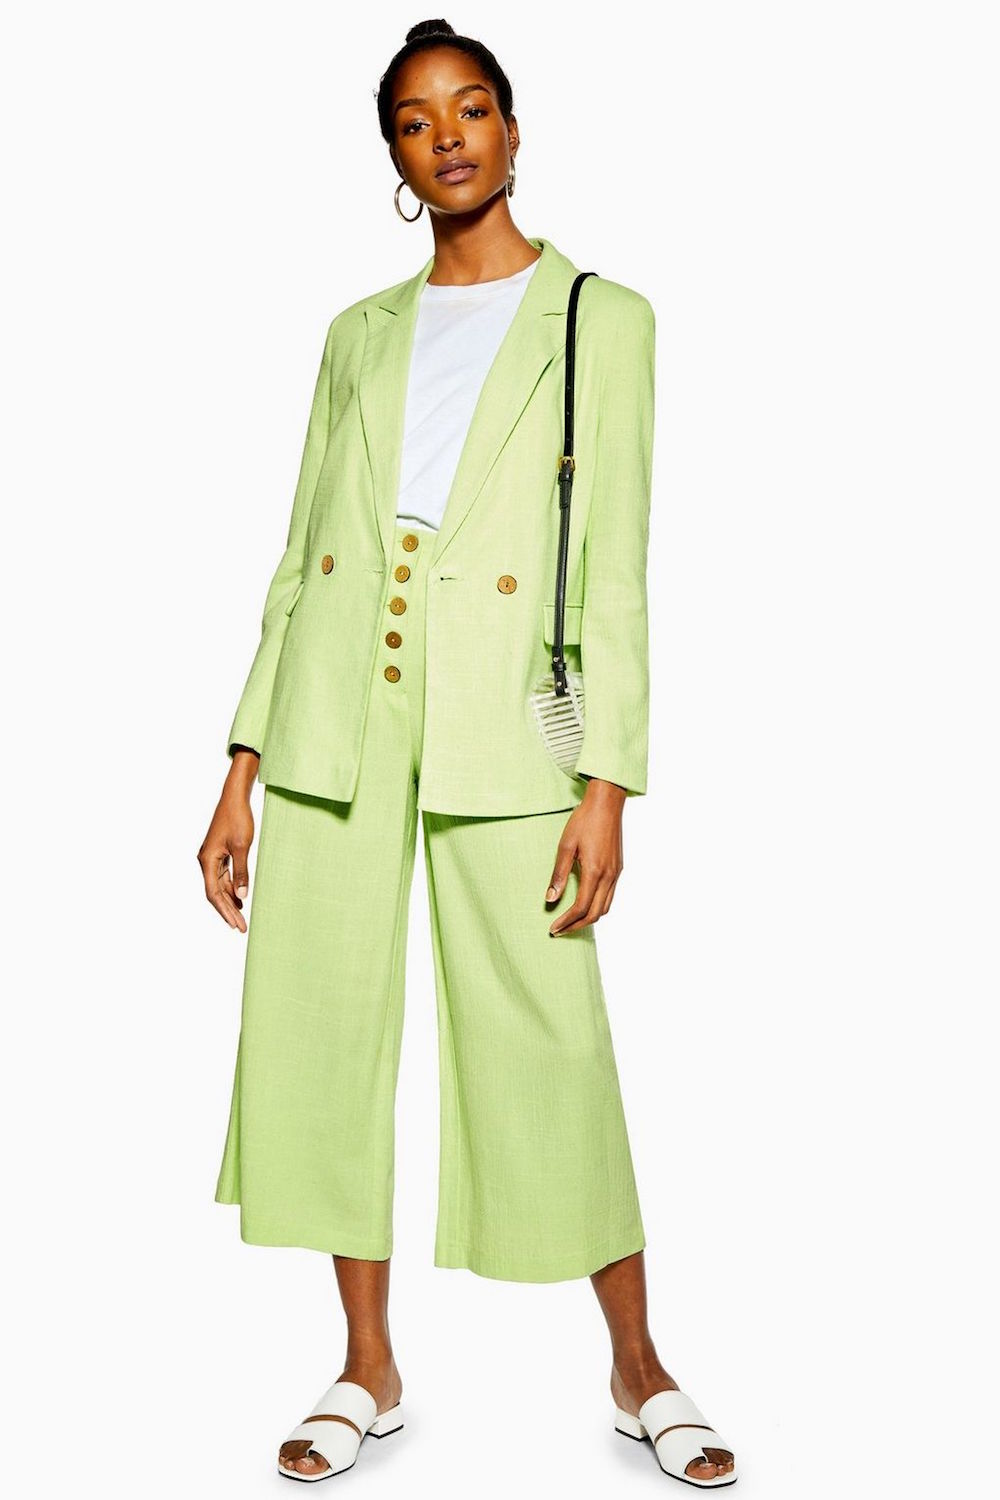 Topshop  The Most Unpredictable Spring Trends to Add to Your Closet Topshop Apple Green Suit